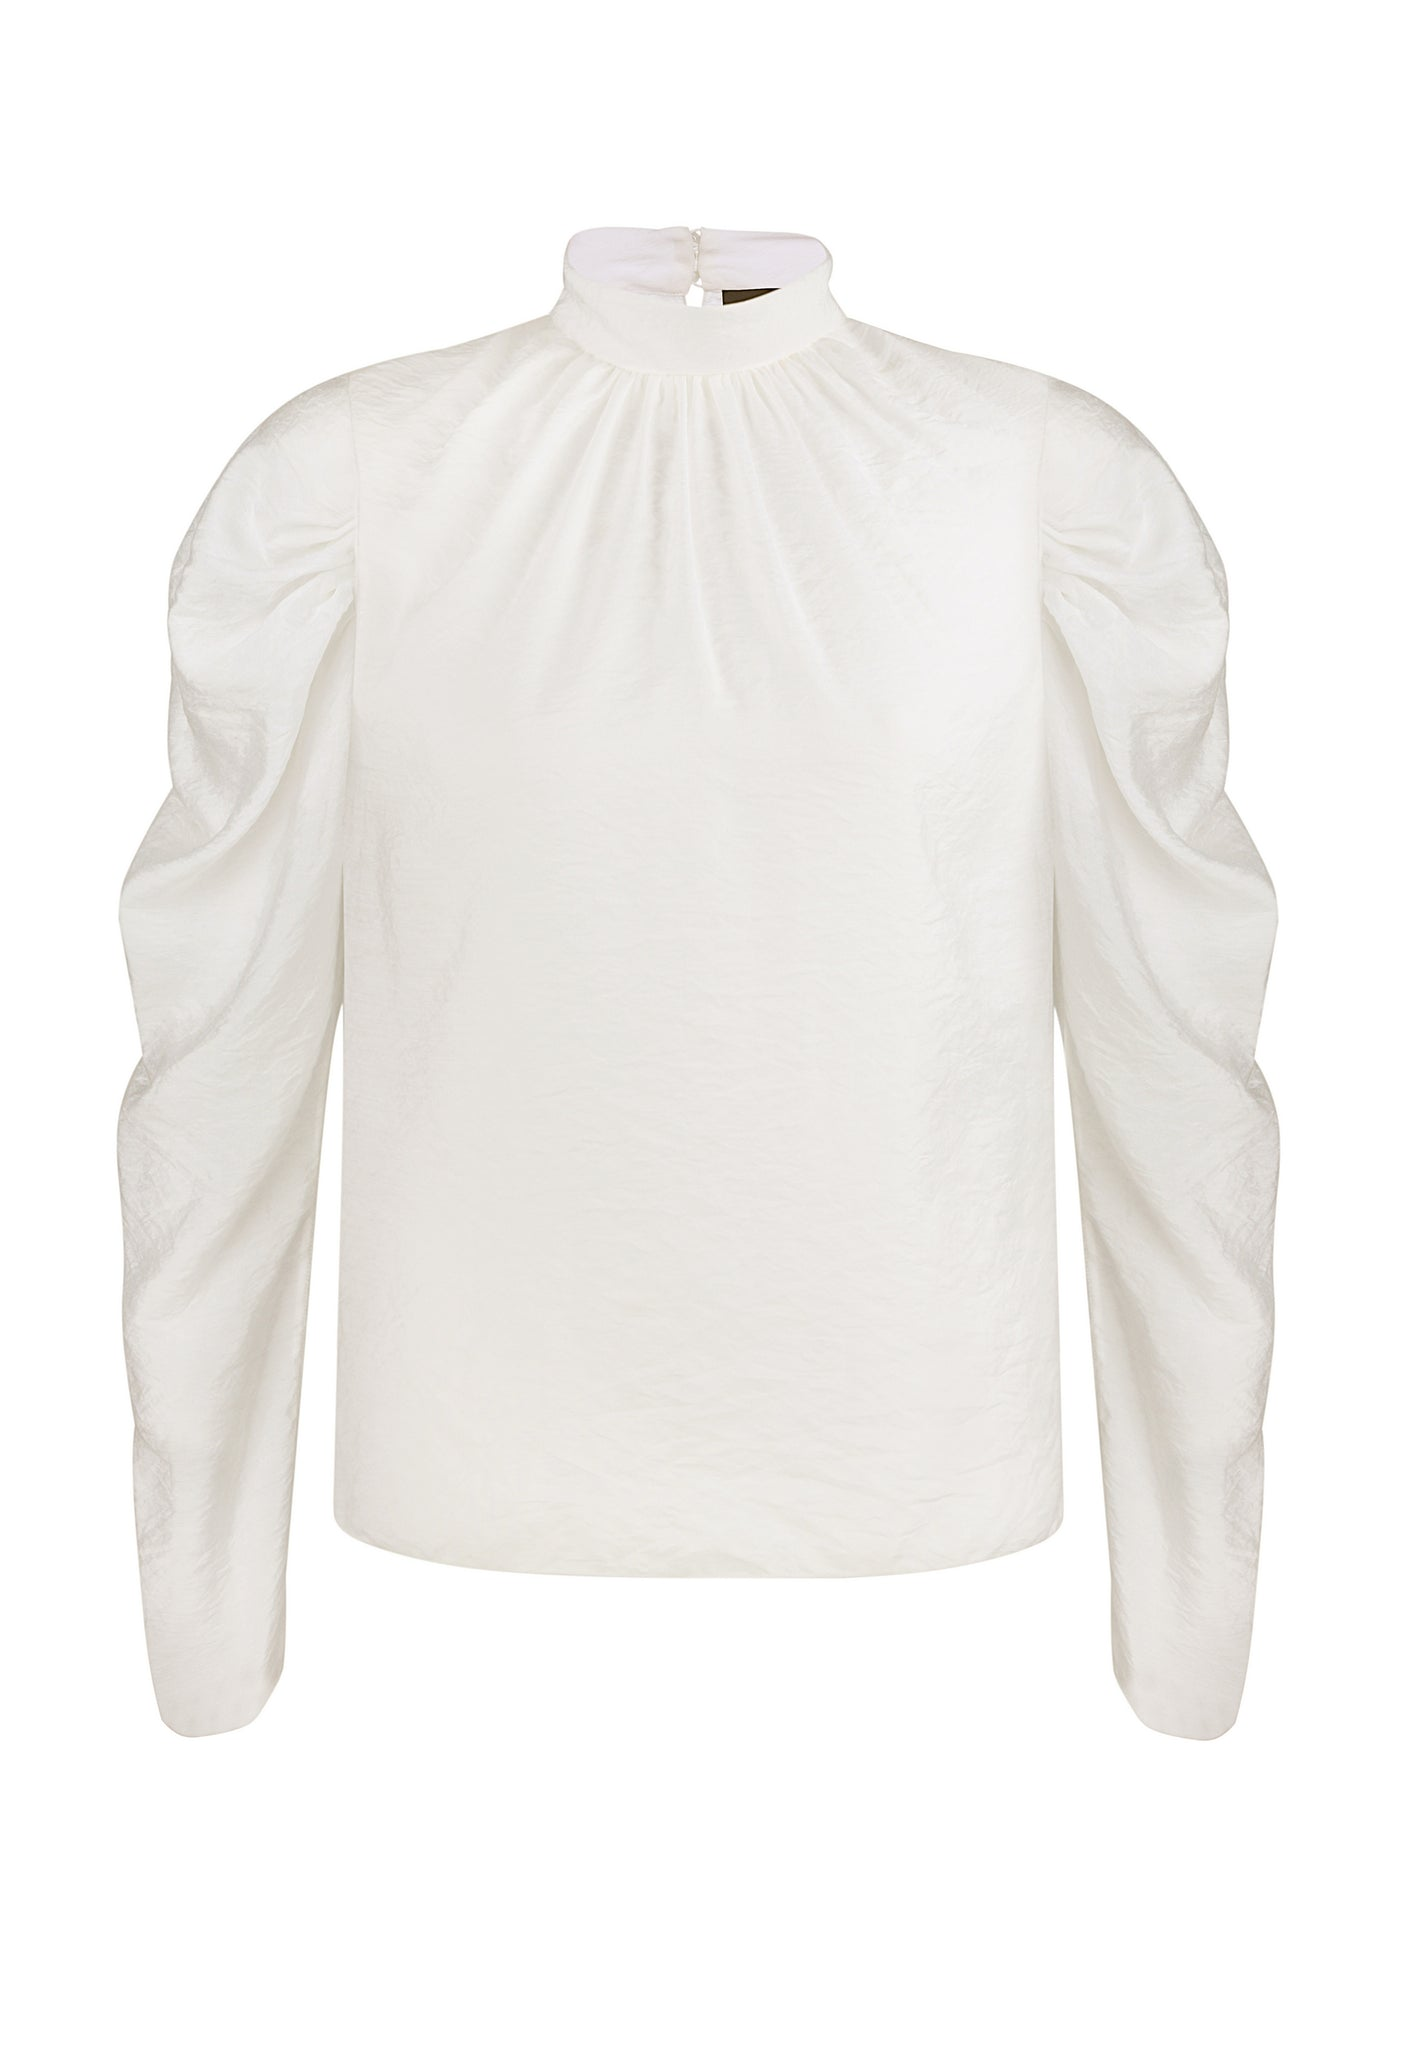 'Santal' blouse, front view.